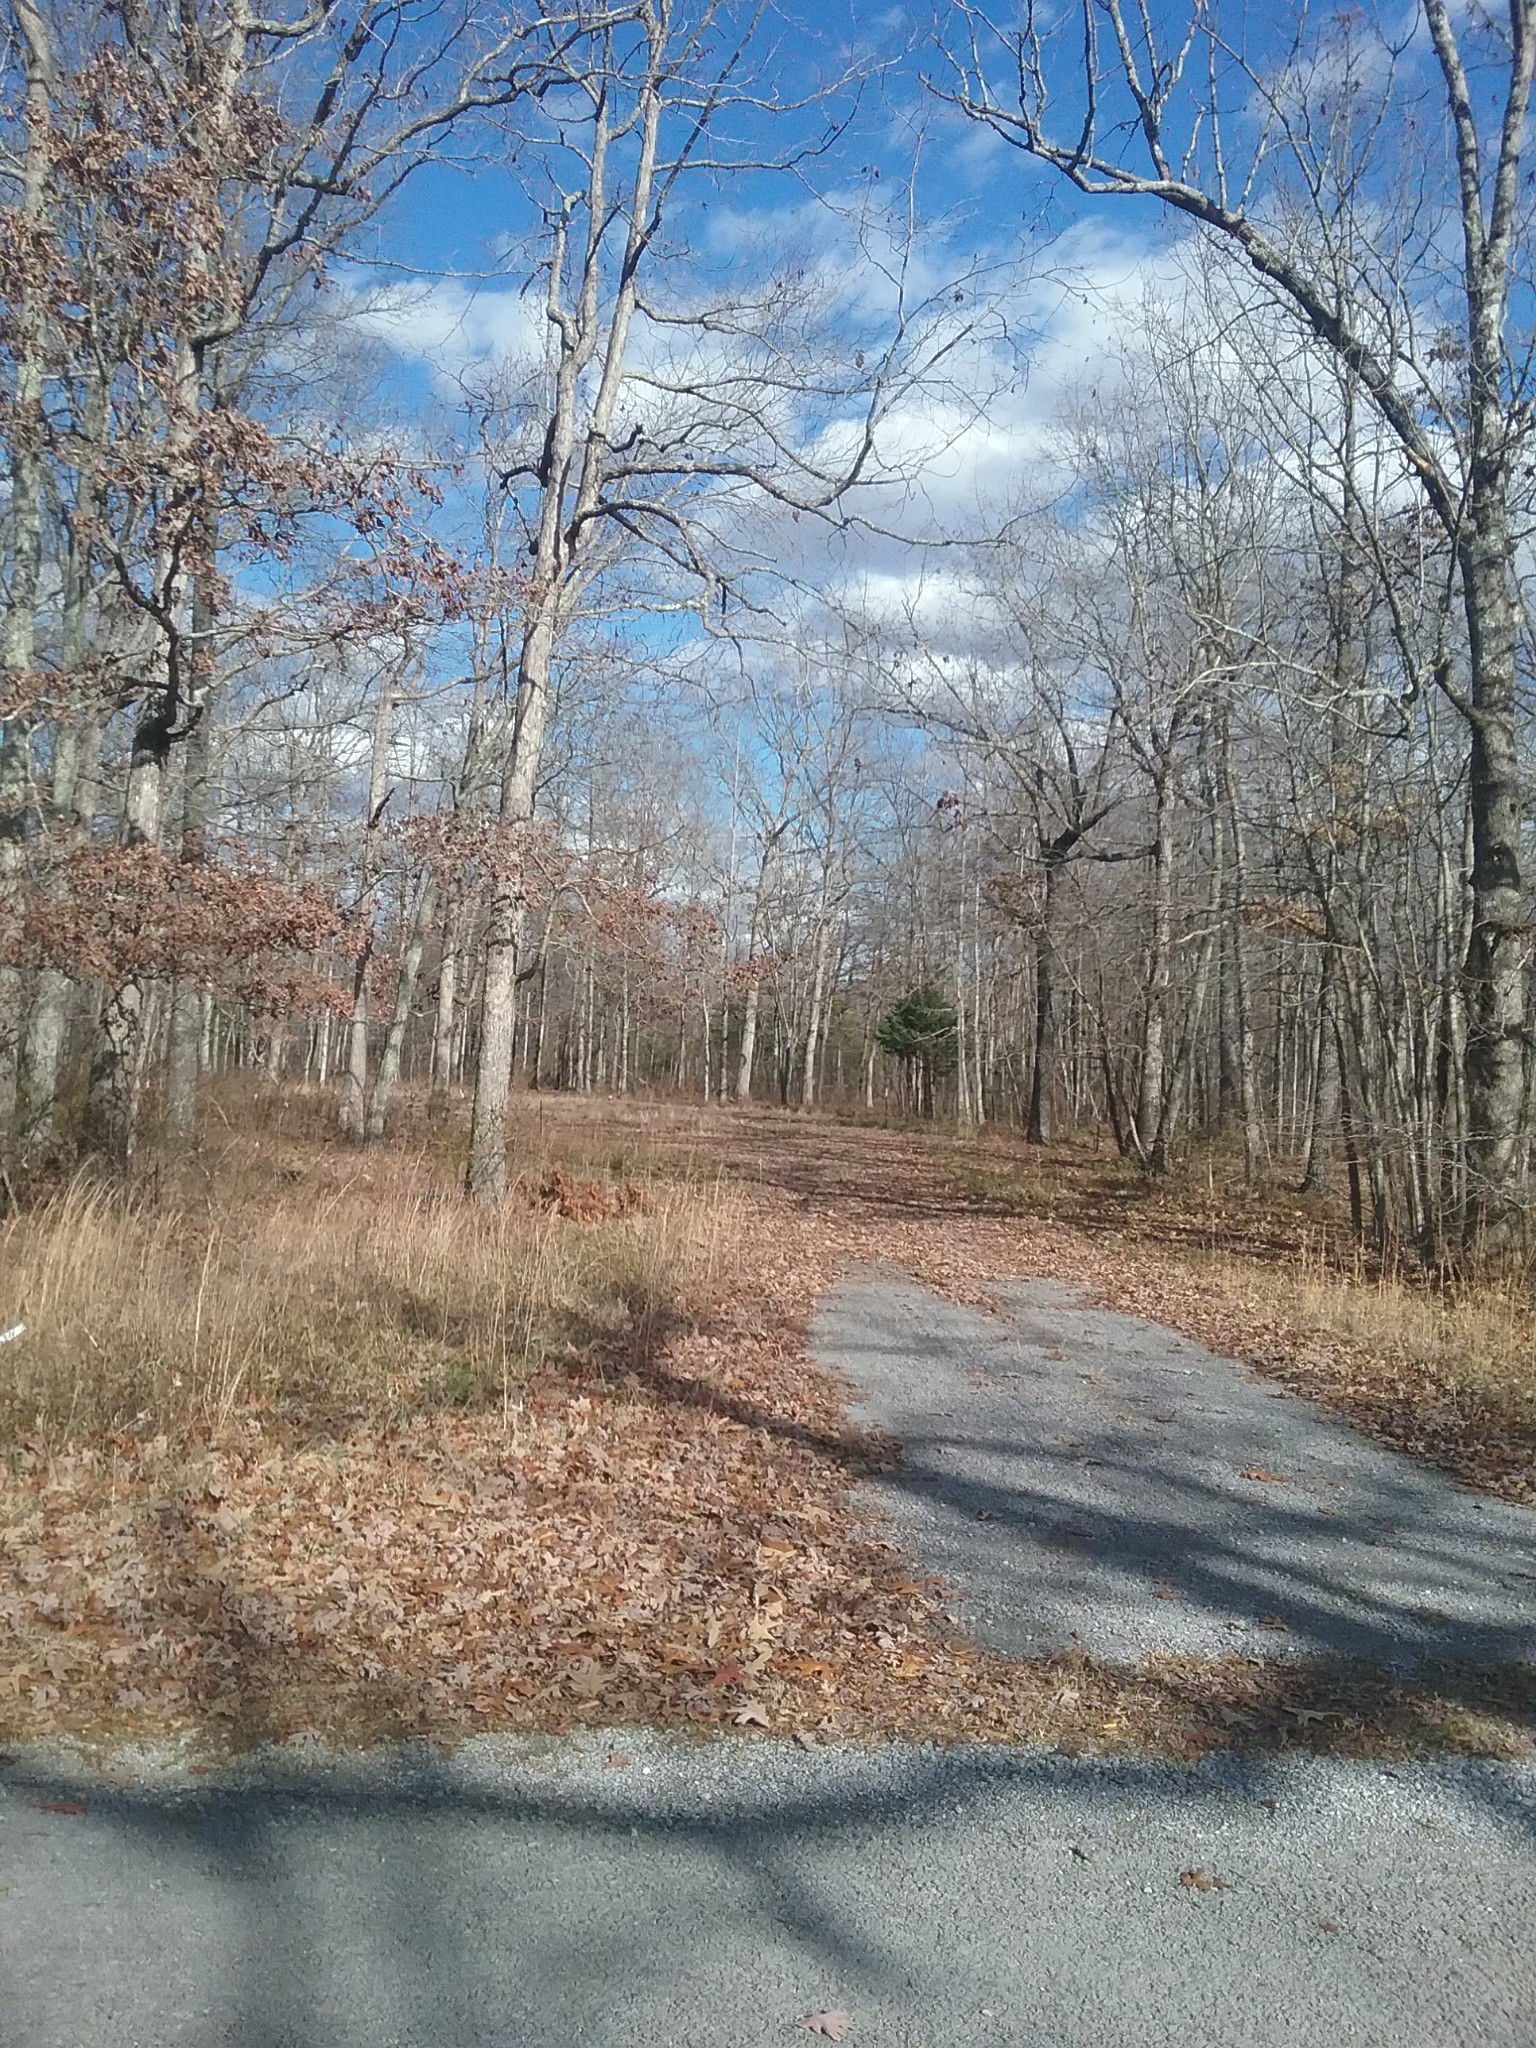 0 Goldenview CT Property Photo - Beechgrove, TN real estate listing